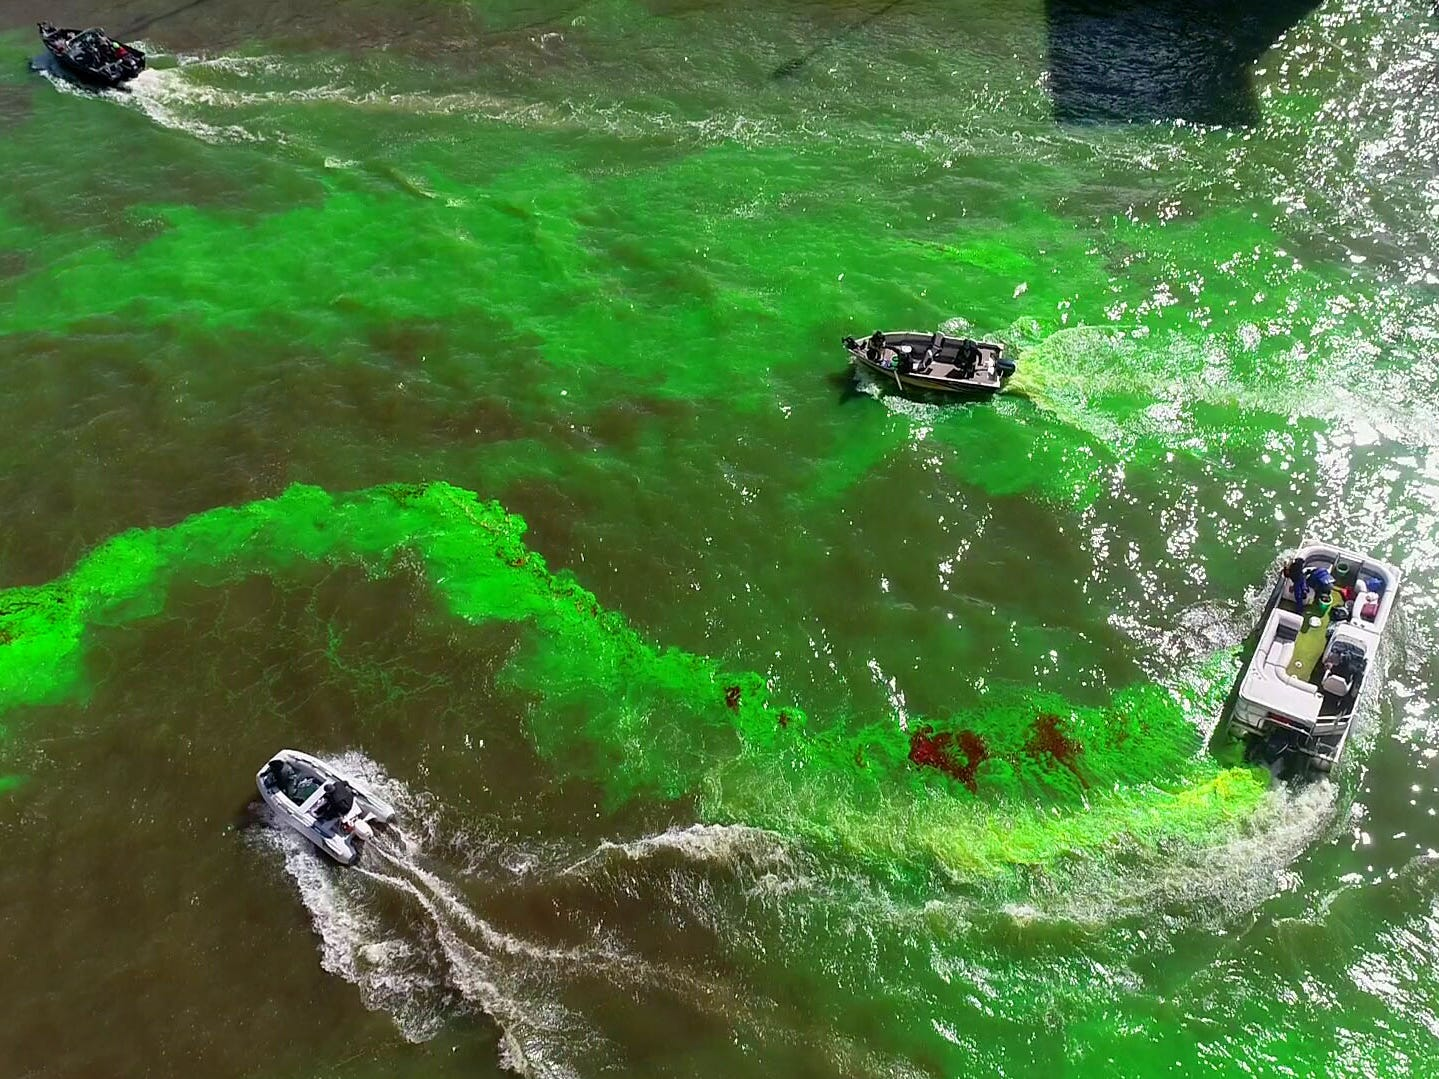 A boat dumps green dye while other boats swirl it around near the East Juneau Avenue bridge. Milwaukee celebrated the start of the Milwaukee Bucks in the NBA Playoffs by dyeing the Milwaukee River green in Milwaukee on Friday, April 12, 2019. The Bucks partnered with the city and the state Department of Natural Resources to dye the river green and throw a kickoff party near Fiserv Forum.